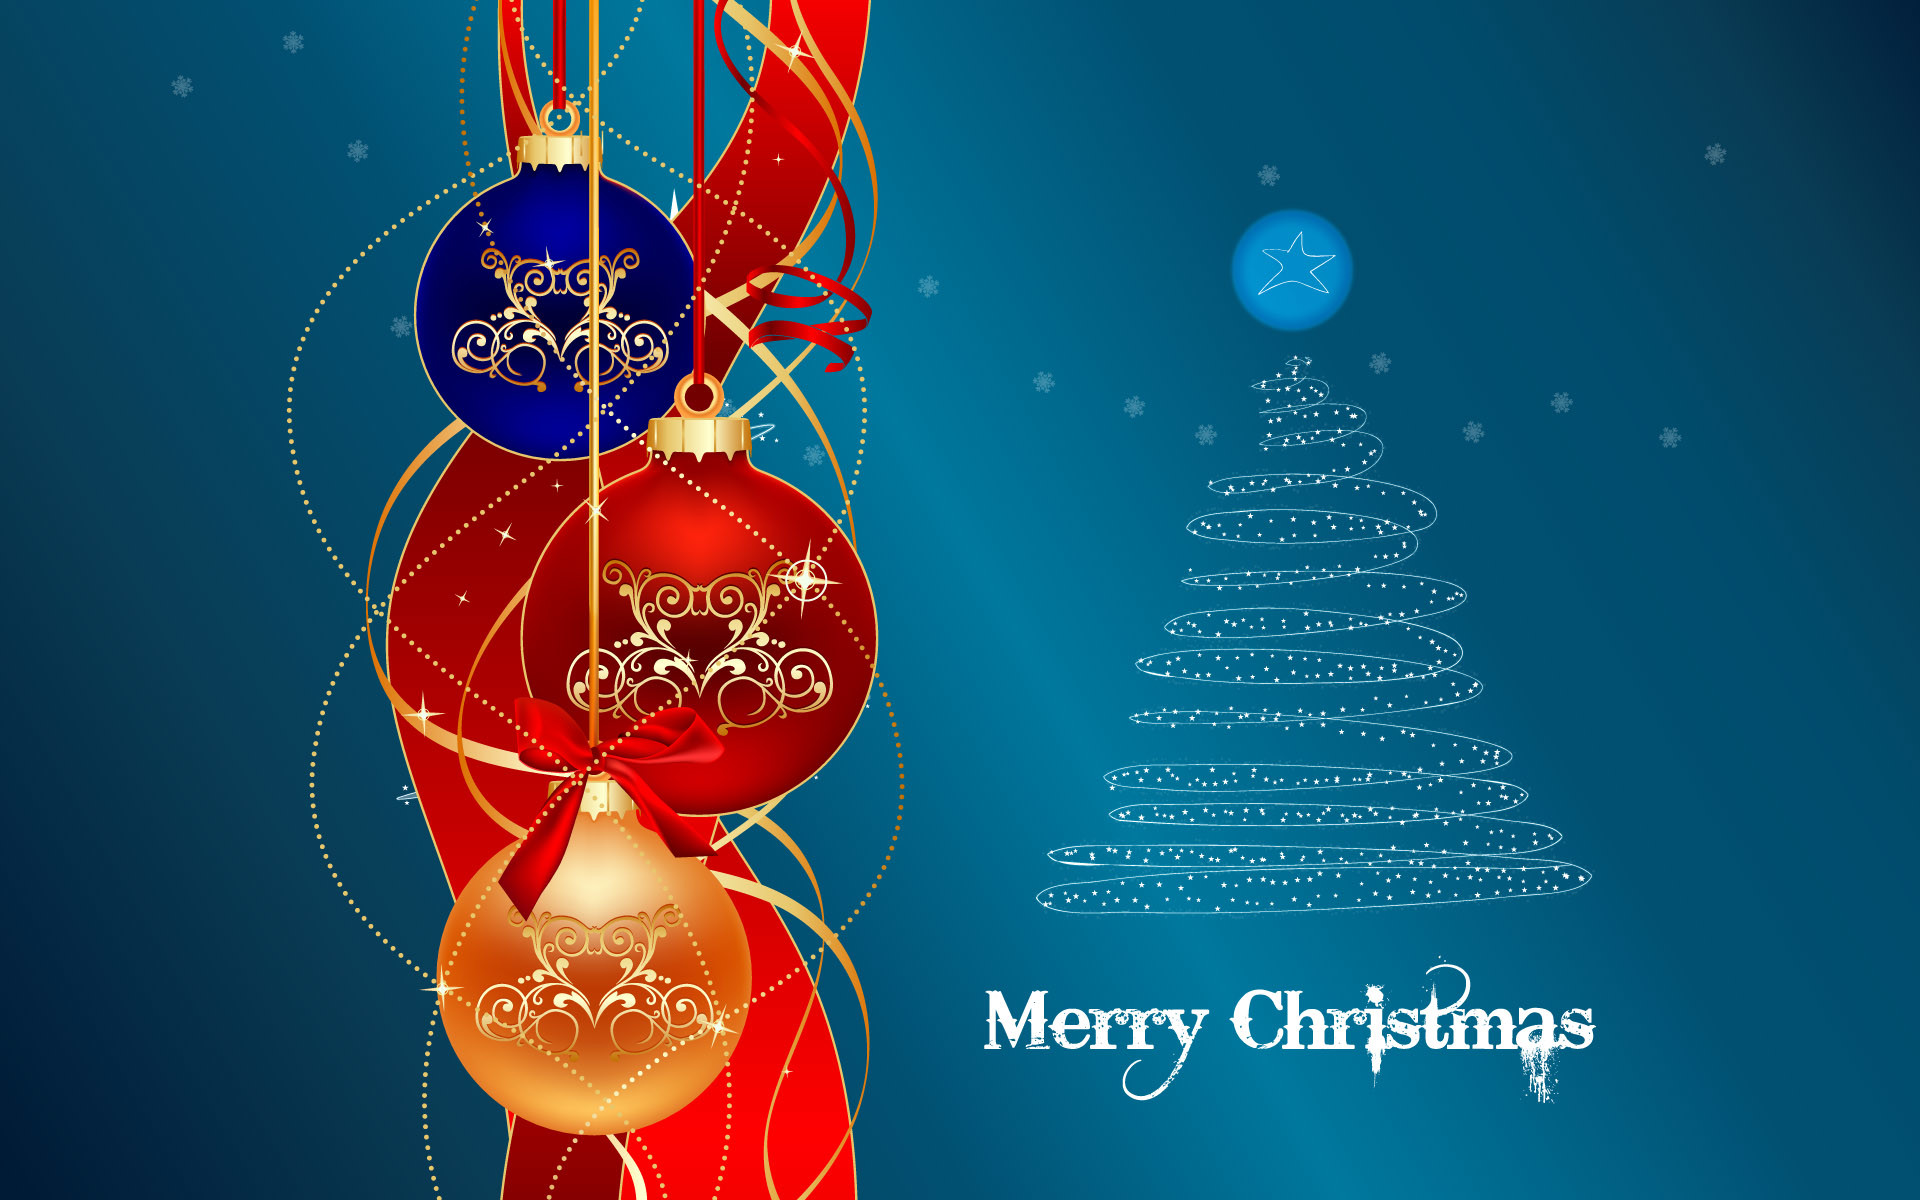 1920x1200 Cute Merry Christmas background Full HD 1080p Wallpapers | PIXHOME